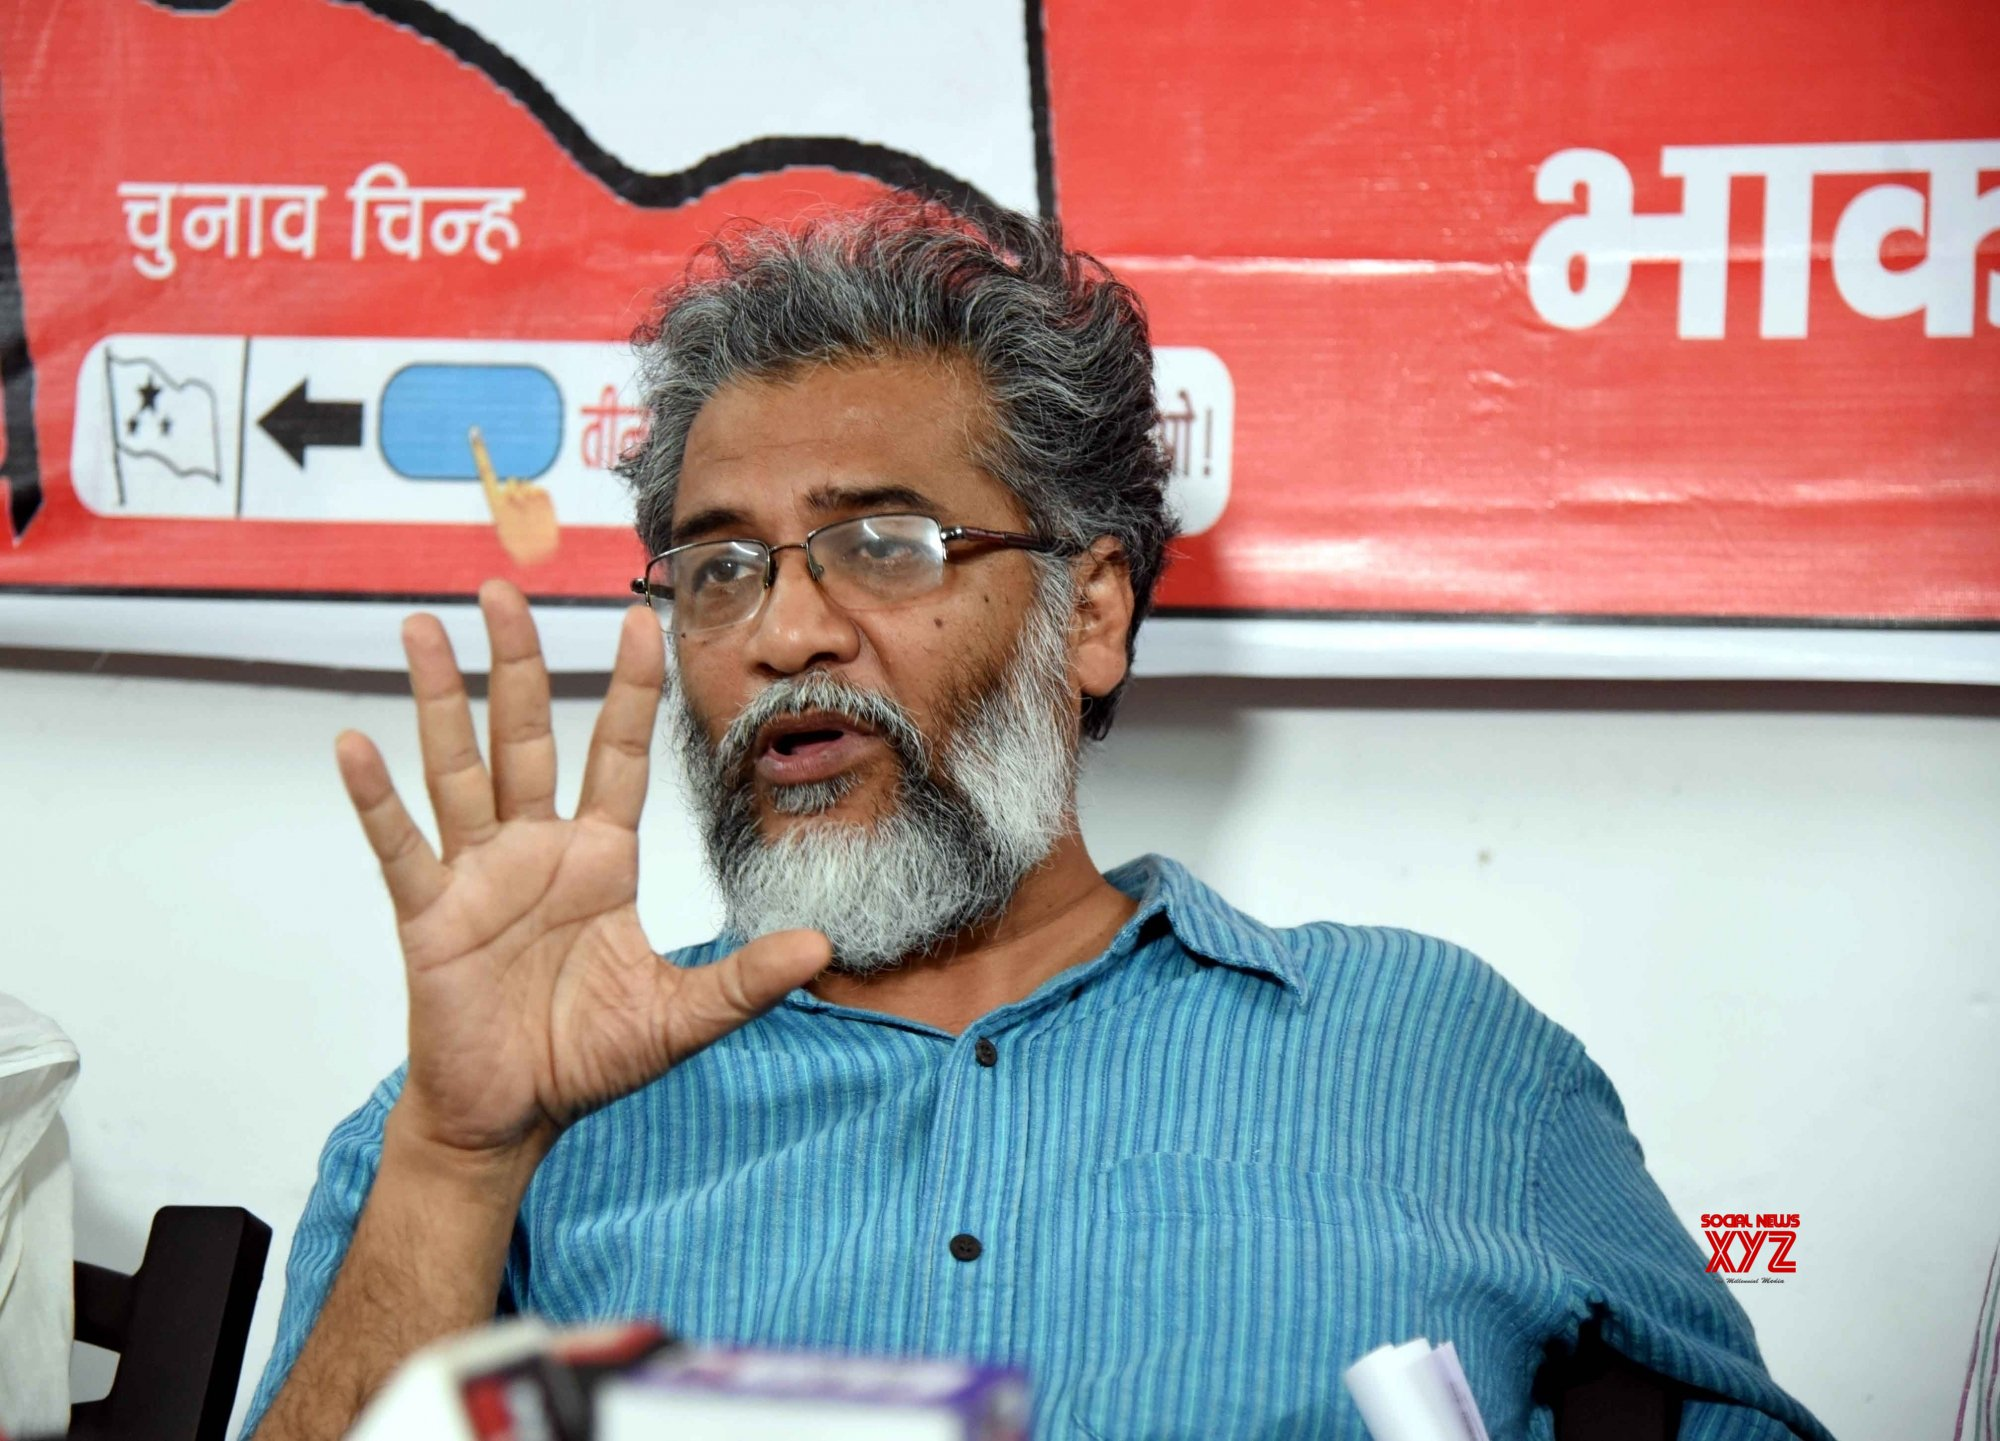 Patna: Dipankar Bhattacharya's press conference #Gallery